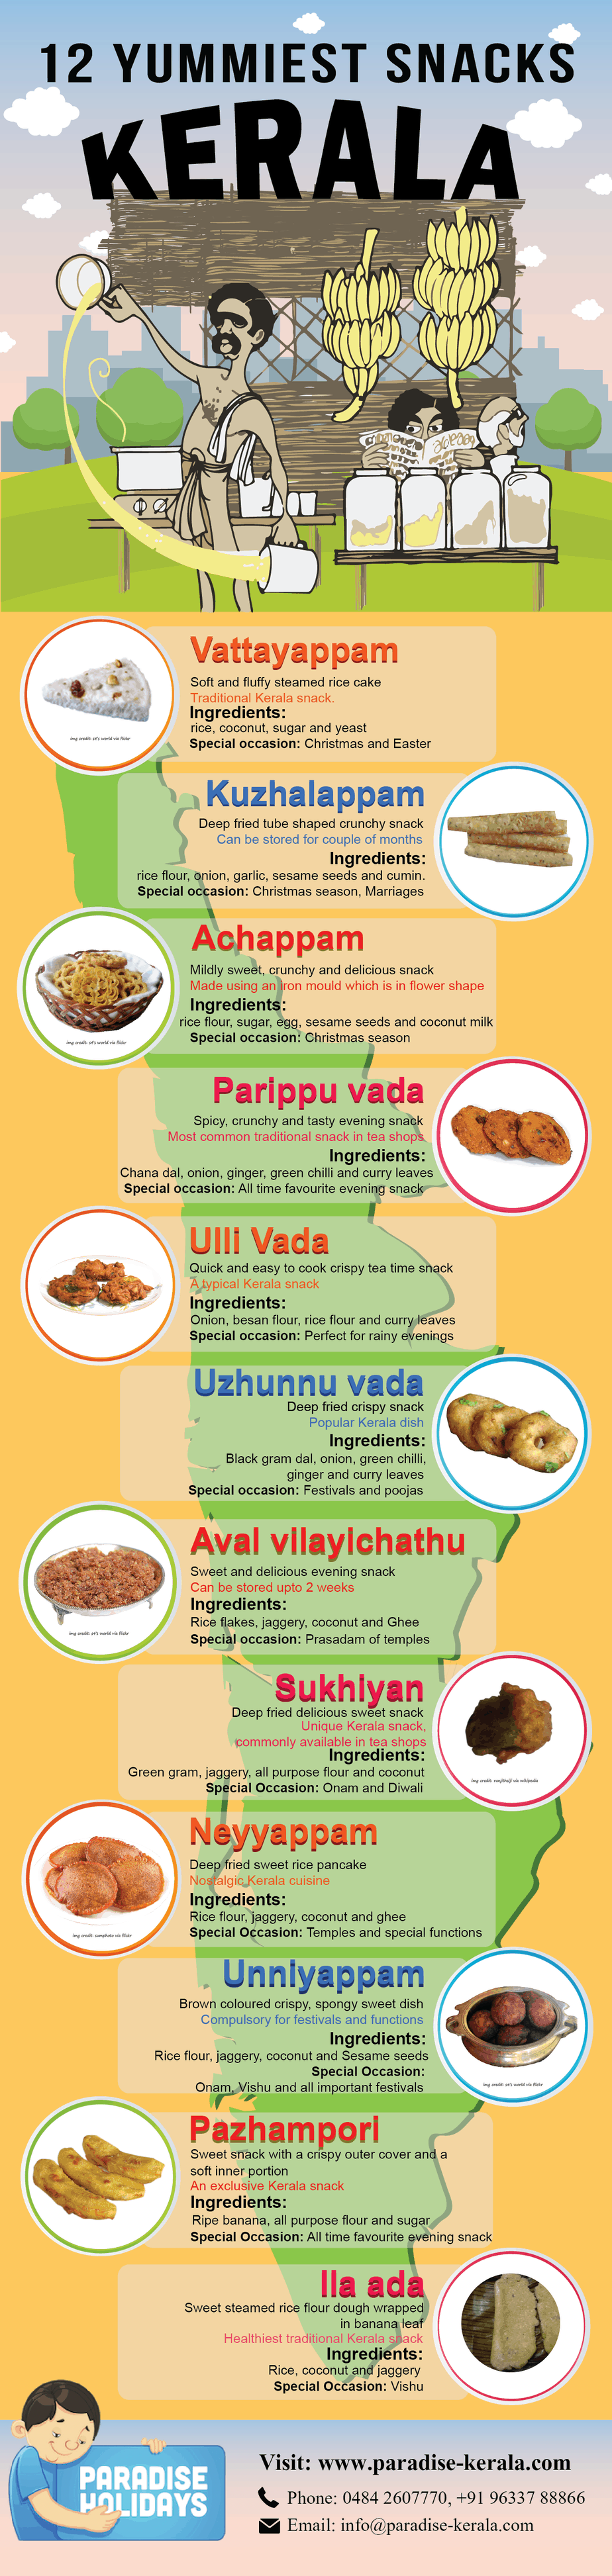 12 Yummiest Snacks Kerala in Kerala